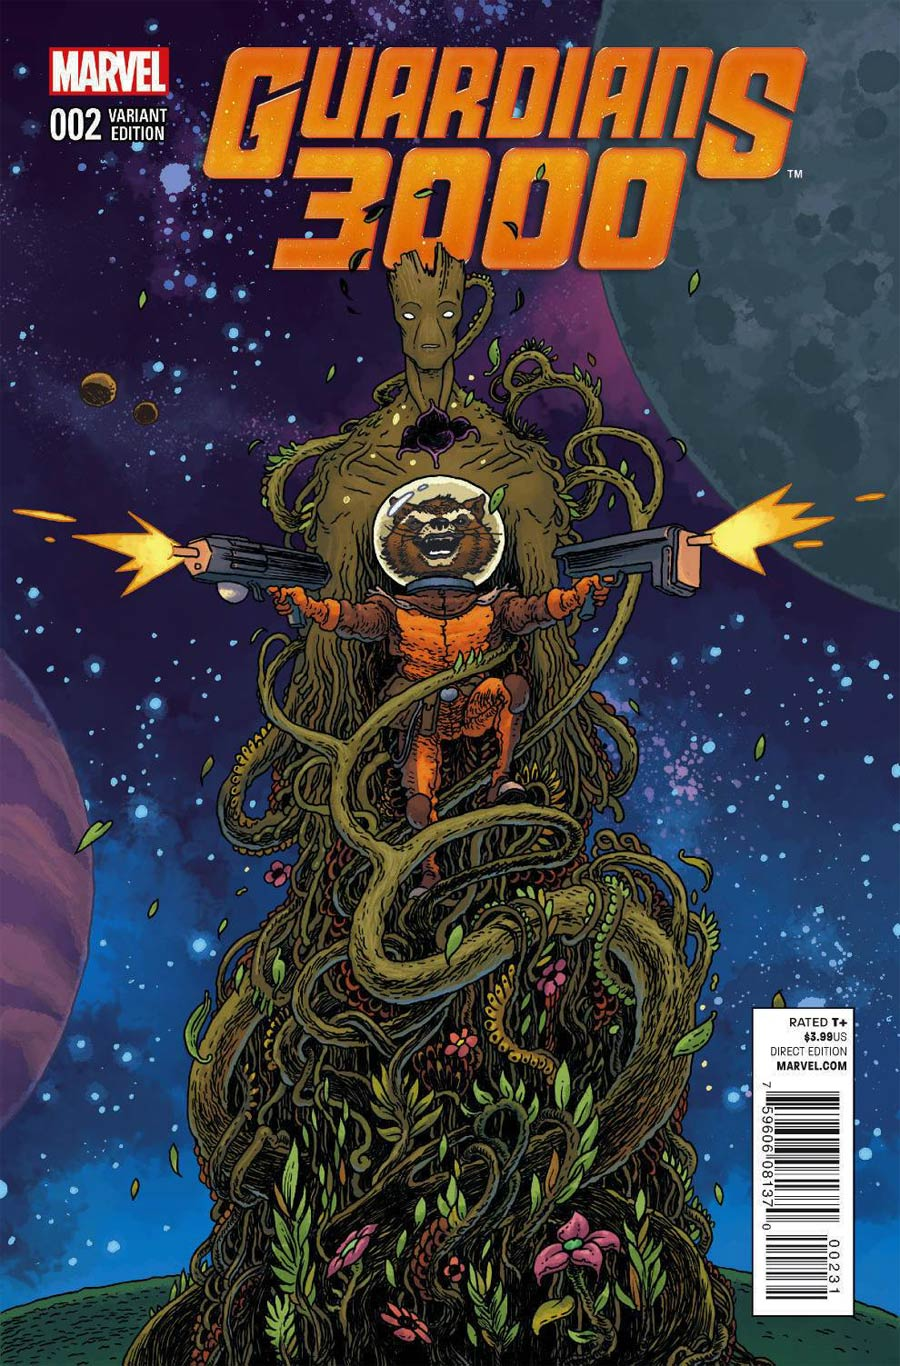 Guardians 3000 #2 Cover B Variant Rocket Raccoon & Groot Cover